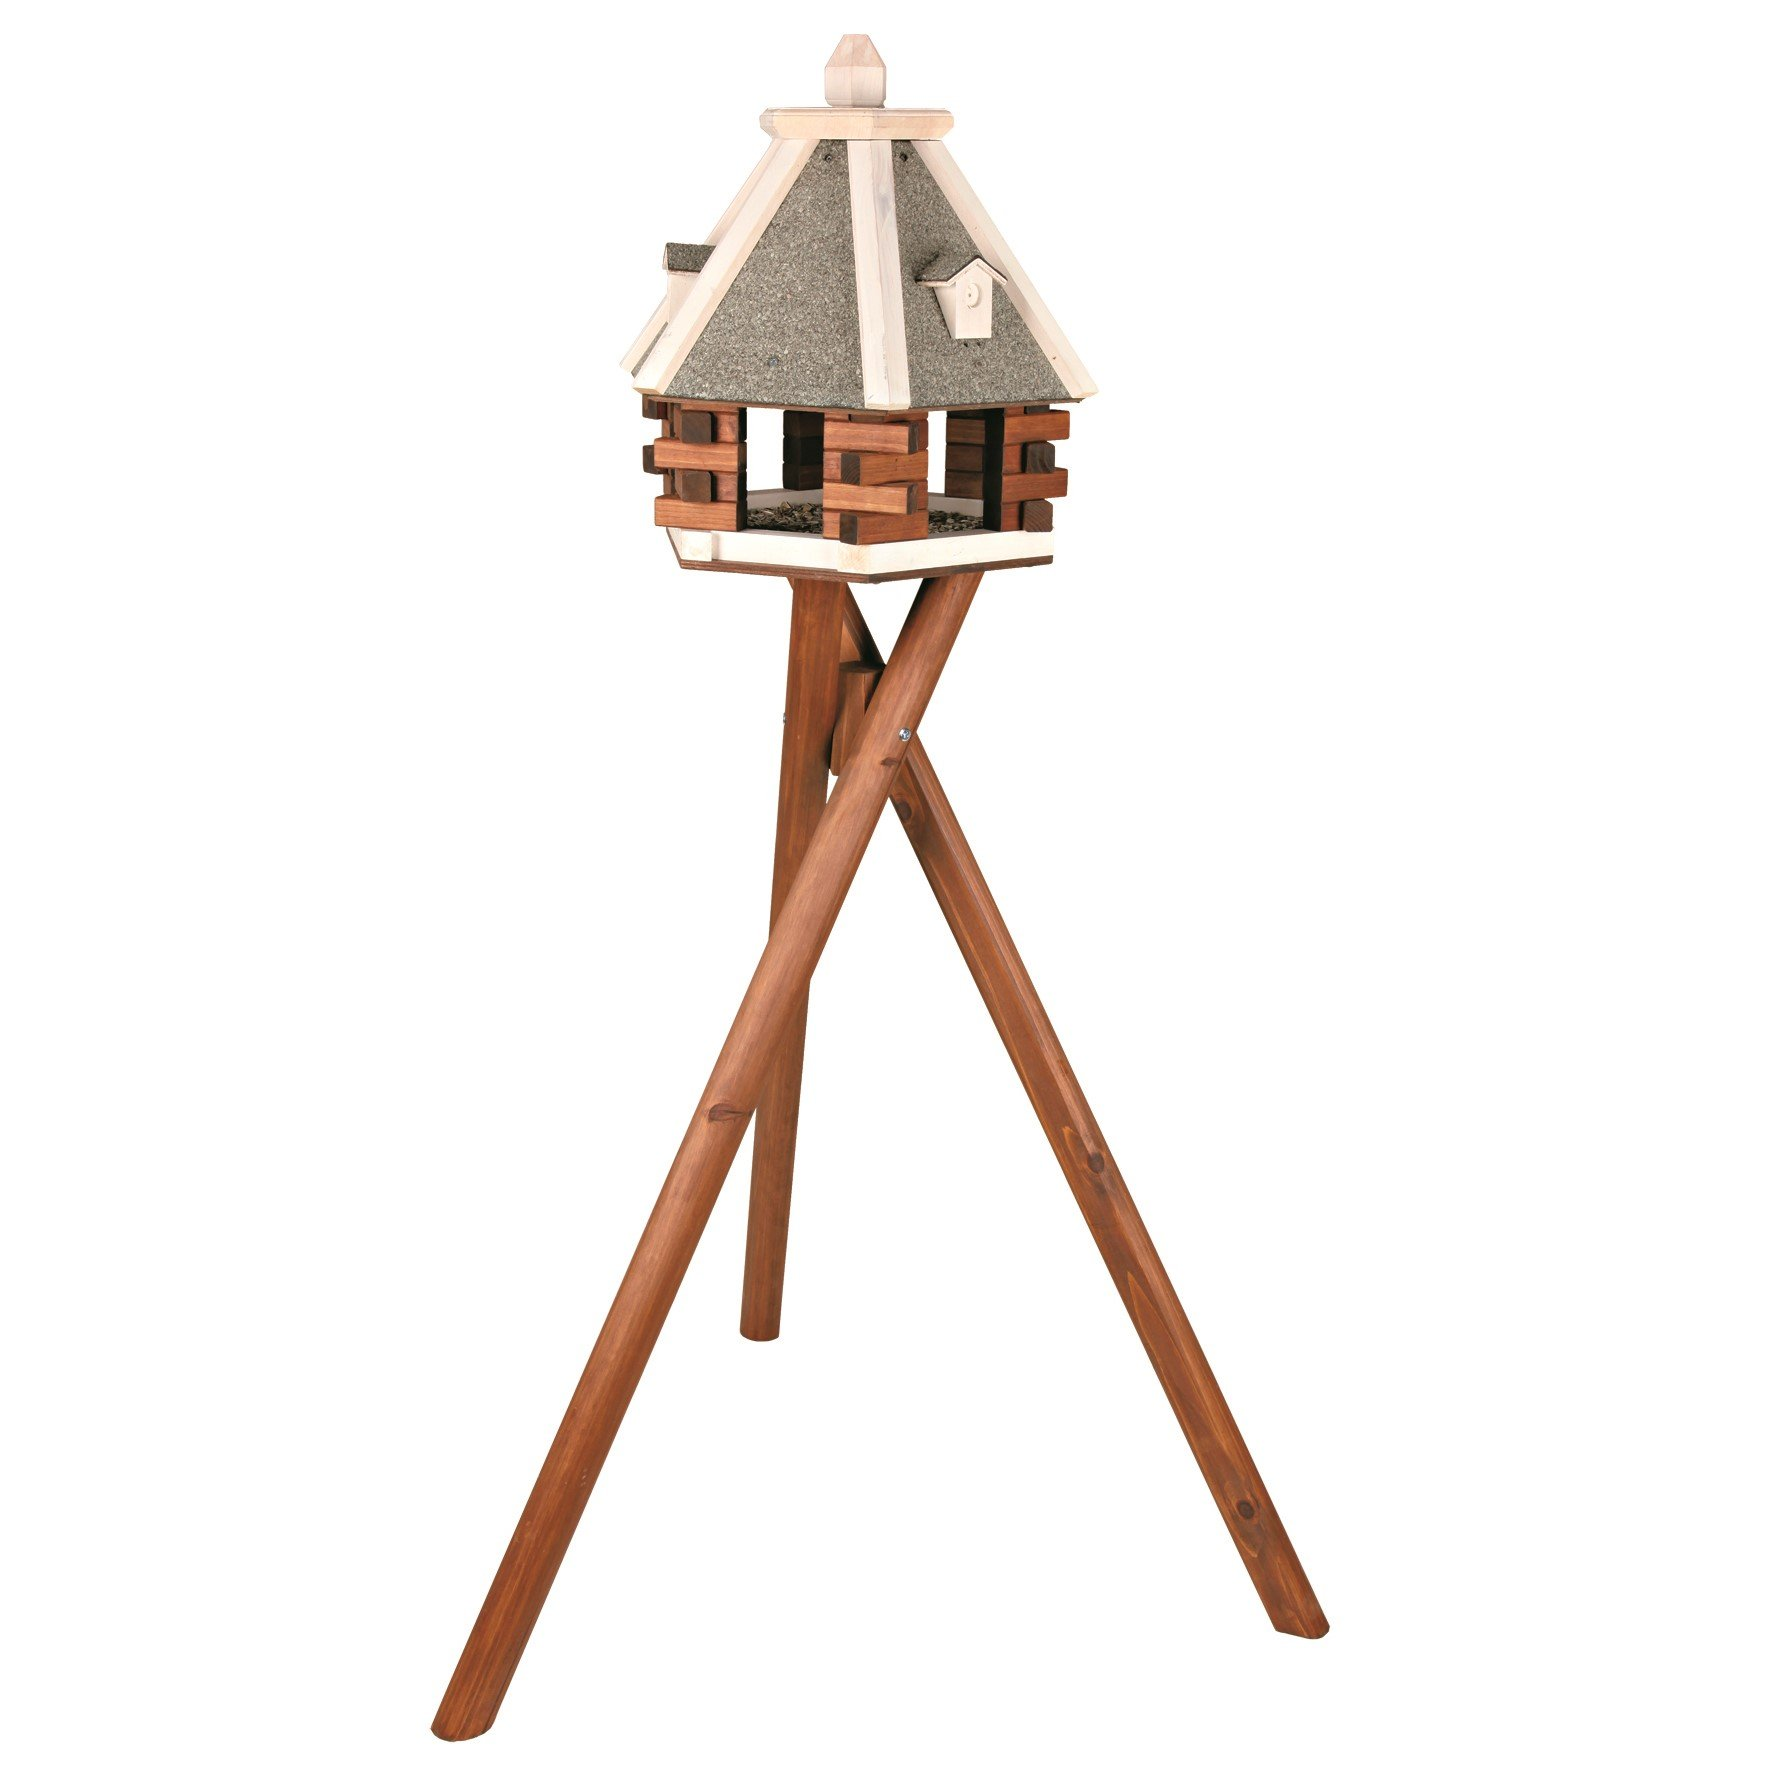 Trixie Pet Products Nordic Wooden Bird Feeder with Stand by Trixie